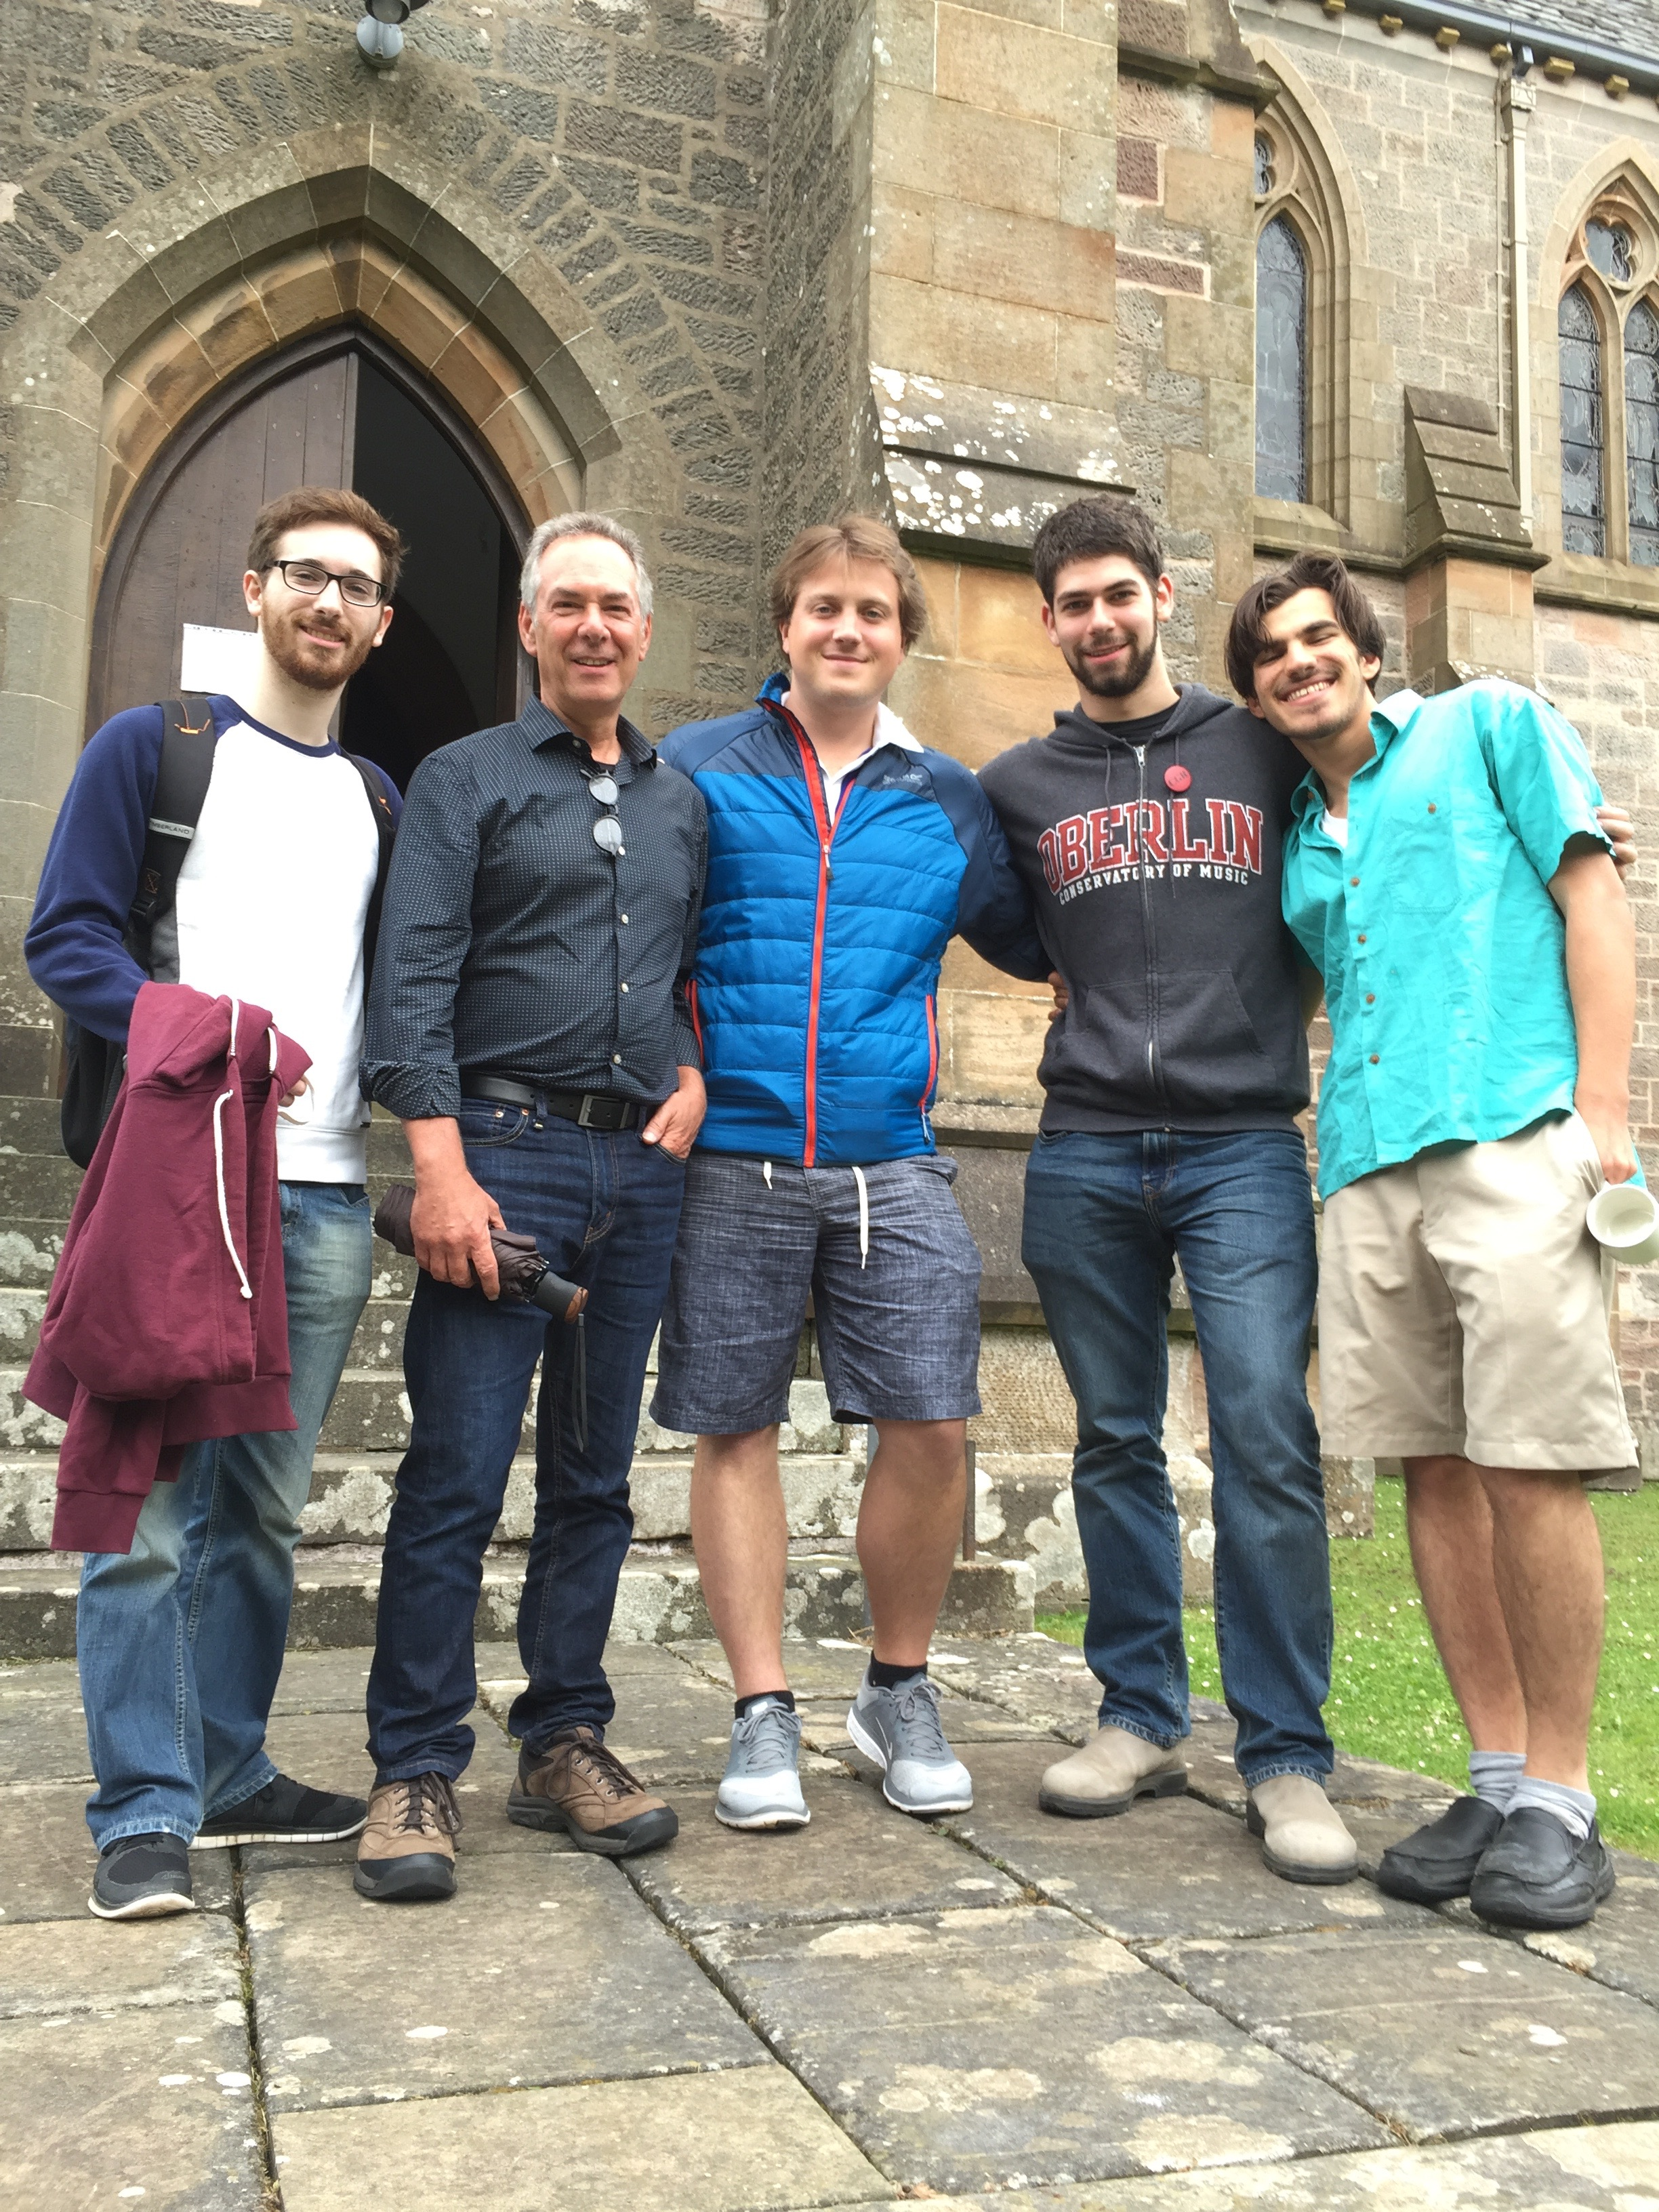 With some of the studio in front of the Cathedral: Brian King, Stephen Fazio, Collin Sterne and Mohit Dubey.